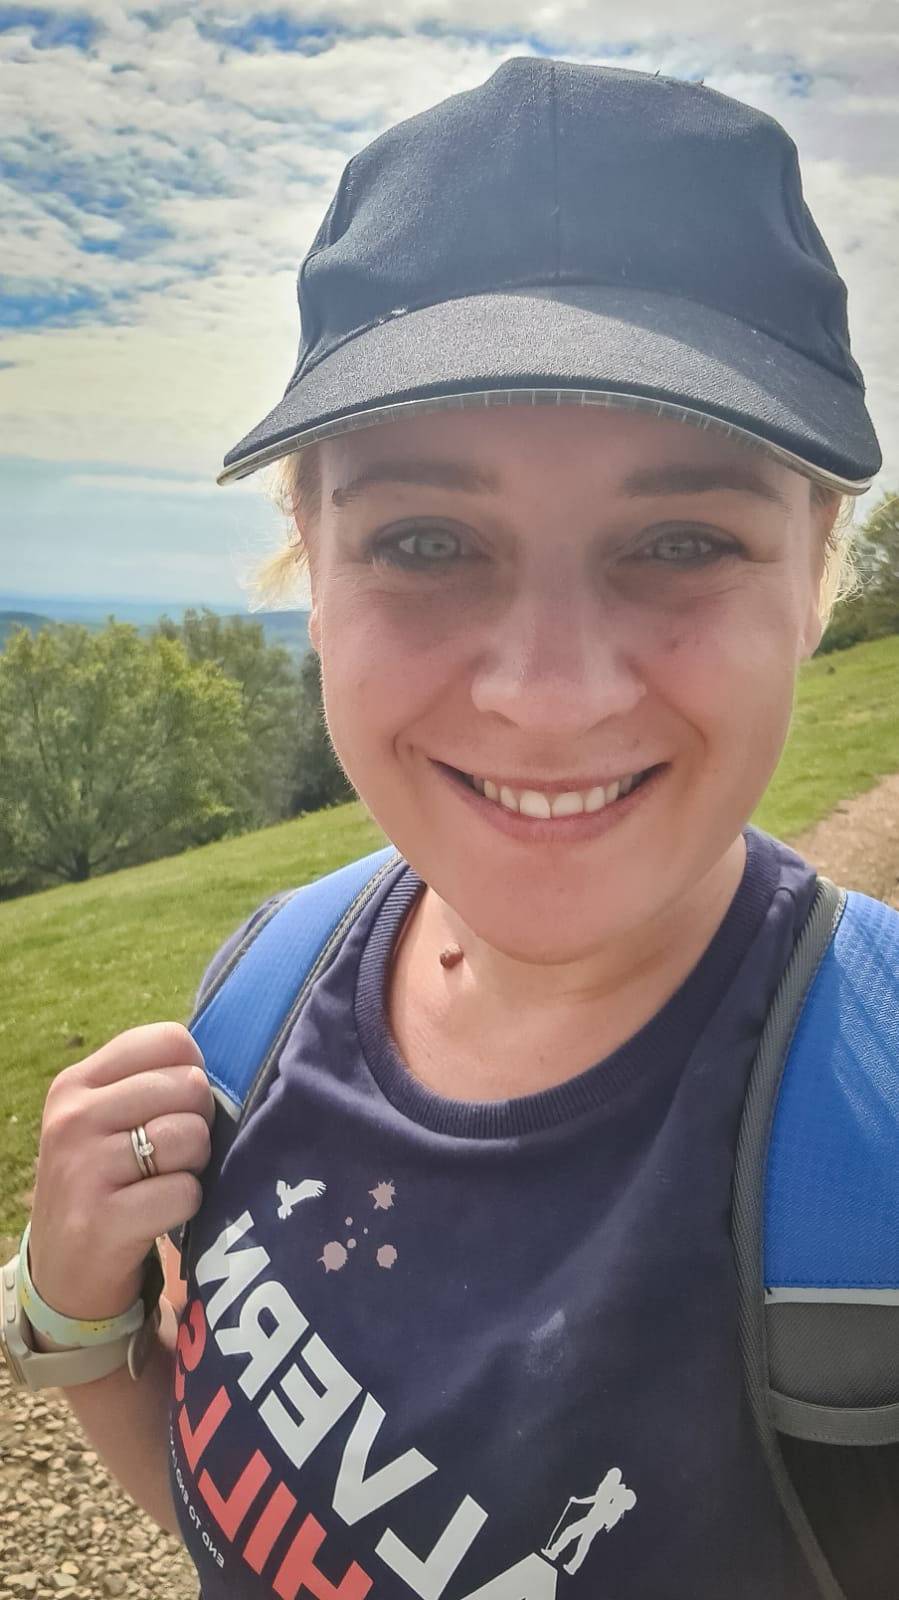 Happy Selfie wearing a custom Gosshawk tshirt for the Malvern Hills End to End and Back challenge